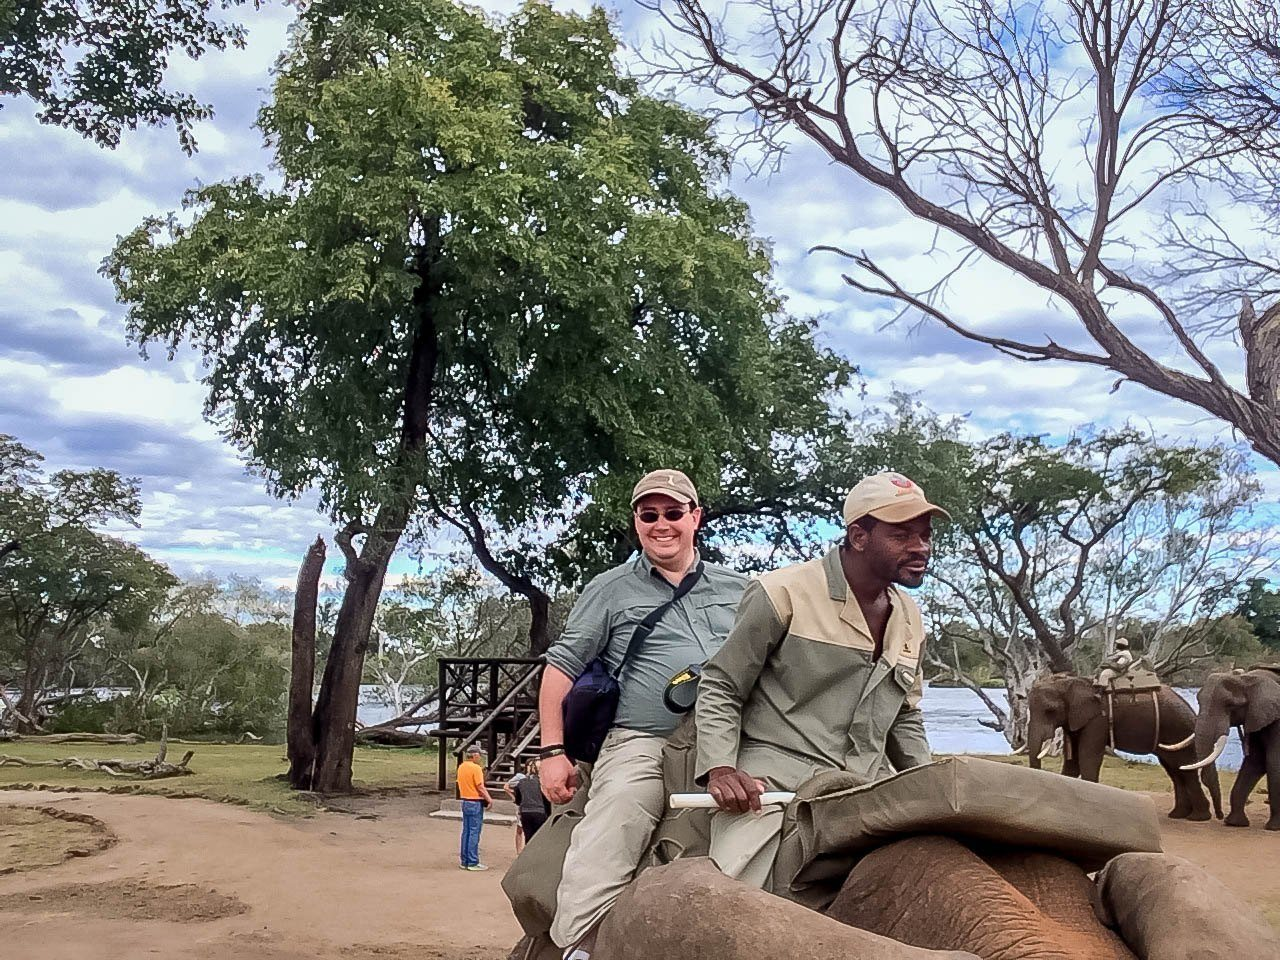 """Getting ready to begin an elephant ride in Zambia. Elephant rides may sound like fun, but it's important to consider how the animals are treated at all stages of """"training."""" Long story short: elephants aren't meant to be ridden."""